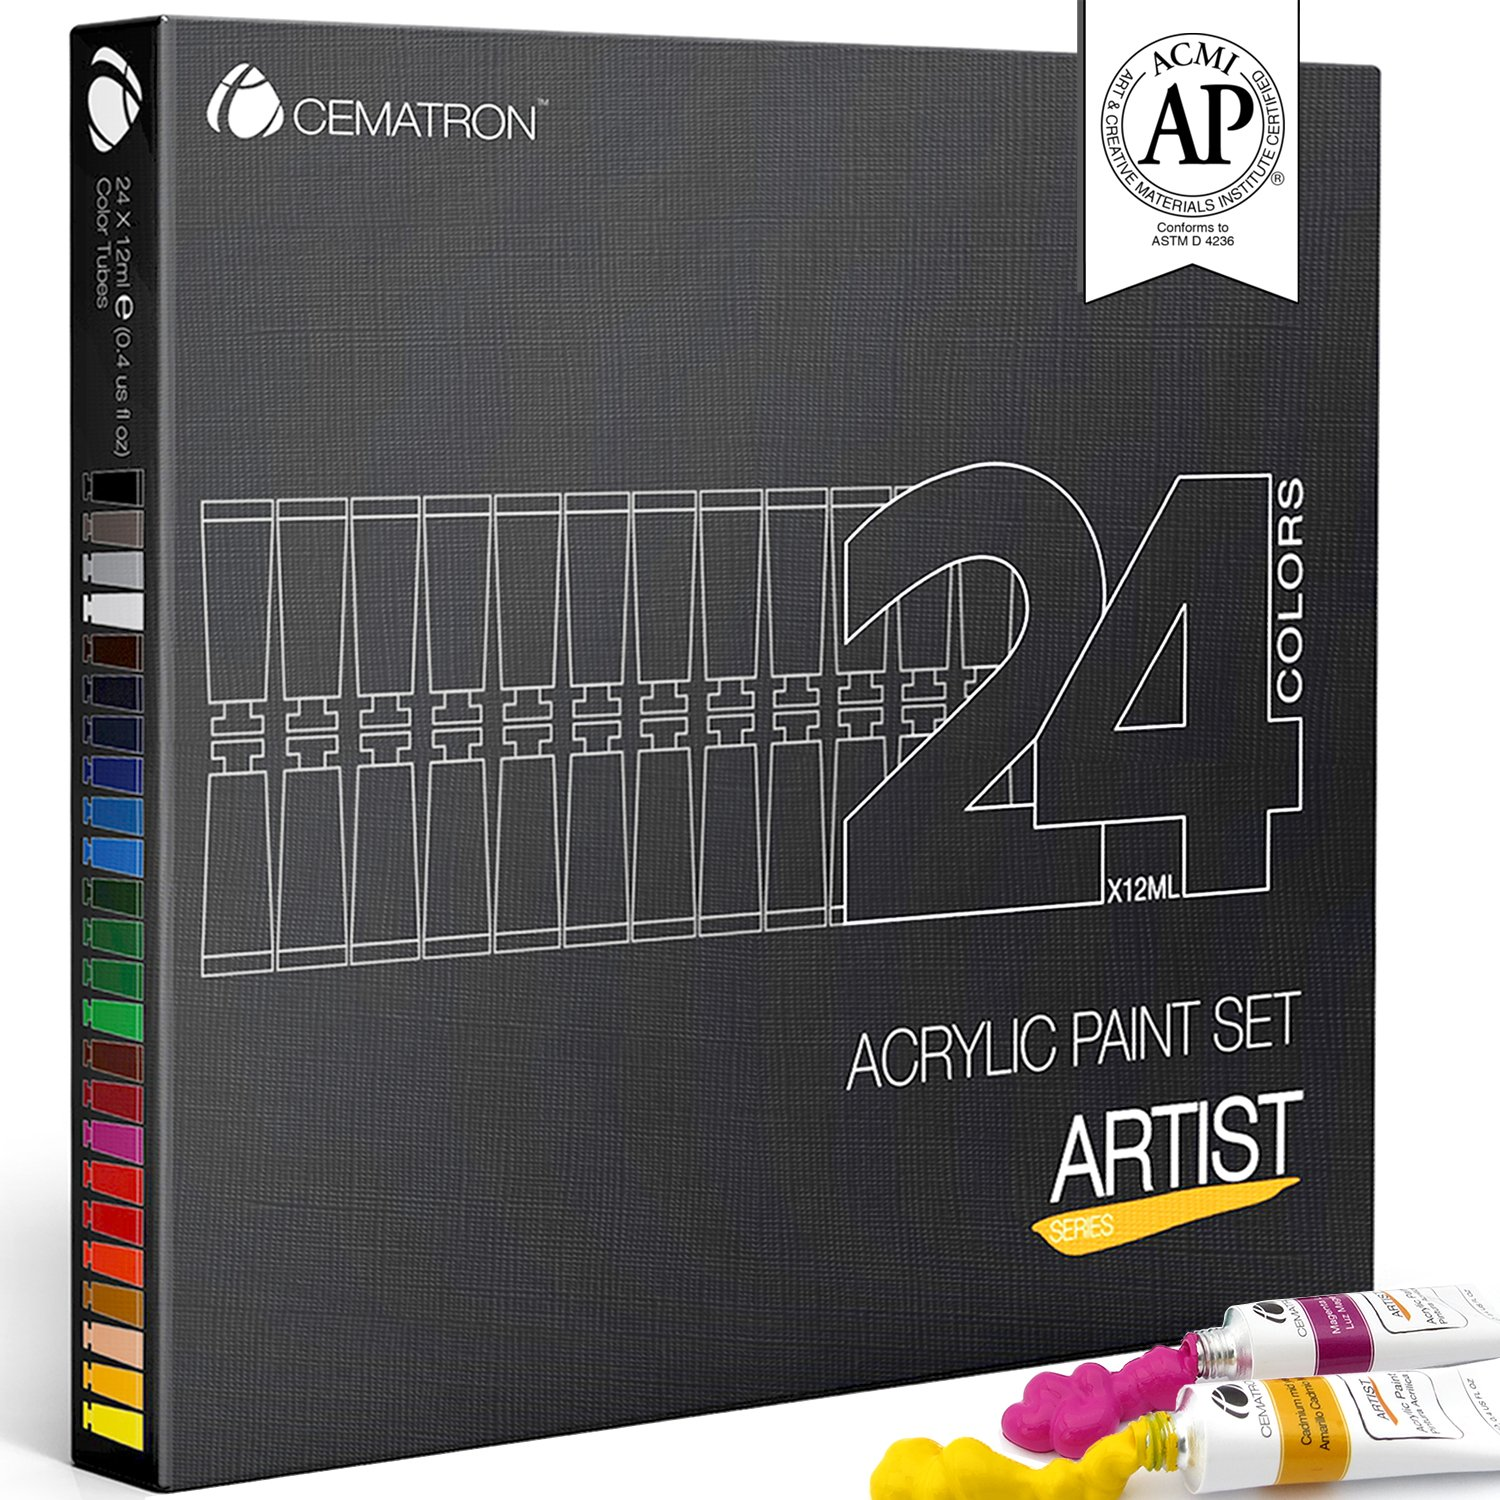 Cematron Acrylic Paint Set 24 Colors, Non Toxic Craft Paint Kit for Canvas Wood Fabric Nails and Rock Painting, Best for Professional Artists, Students or Hobbyist (Artist Grade)